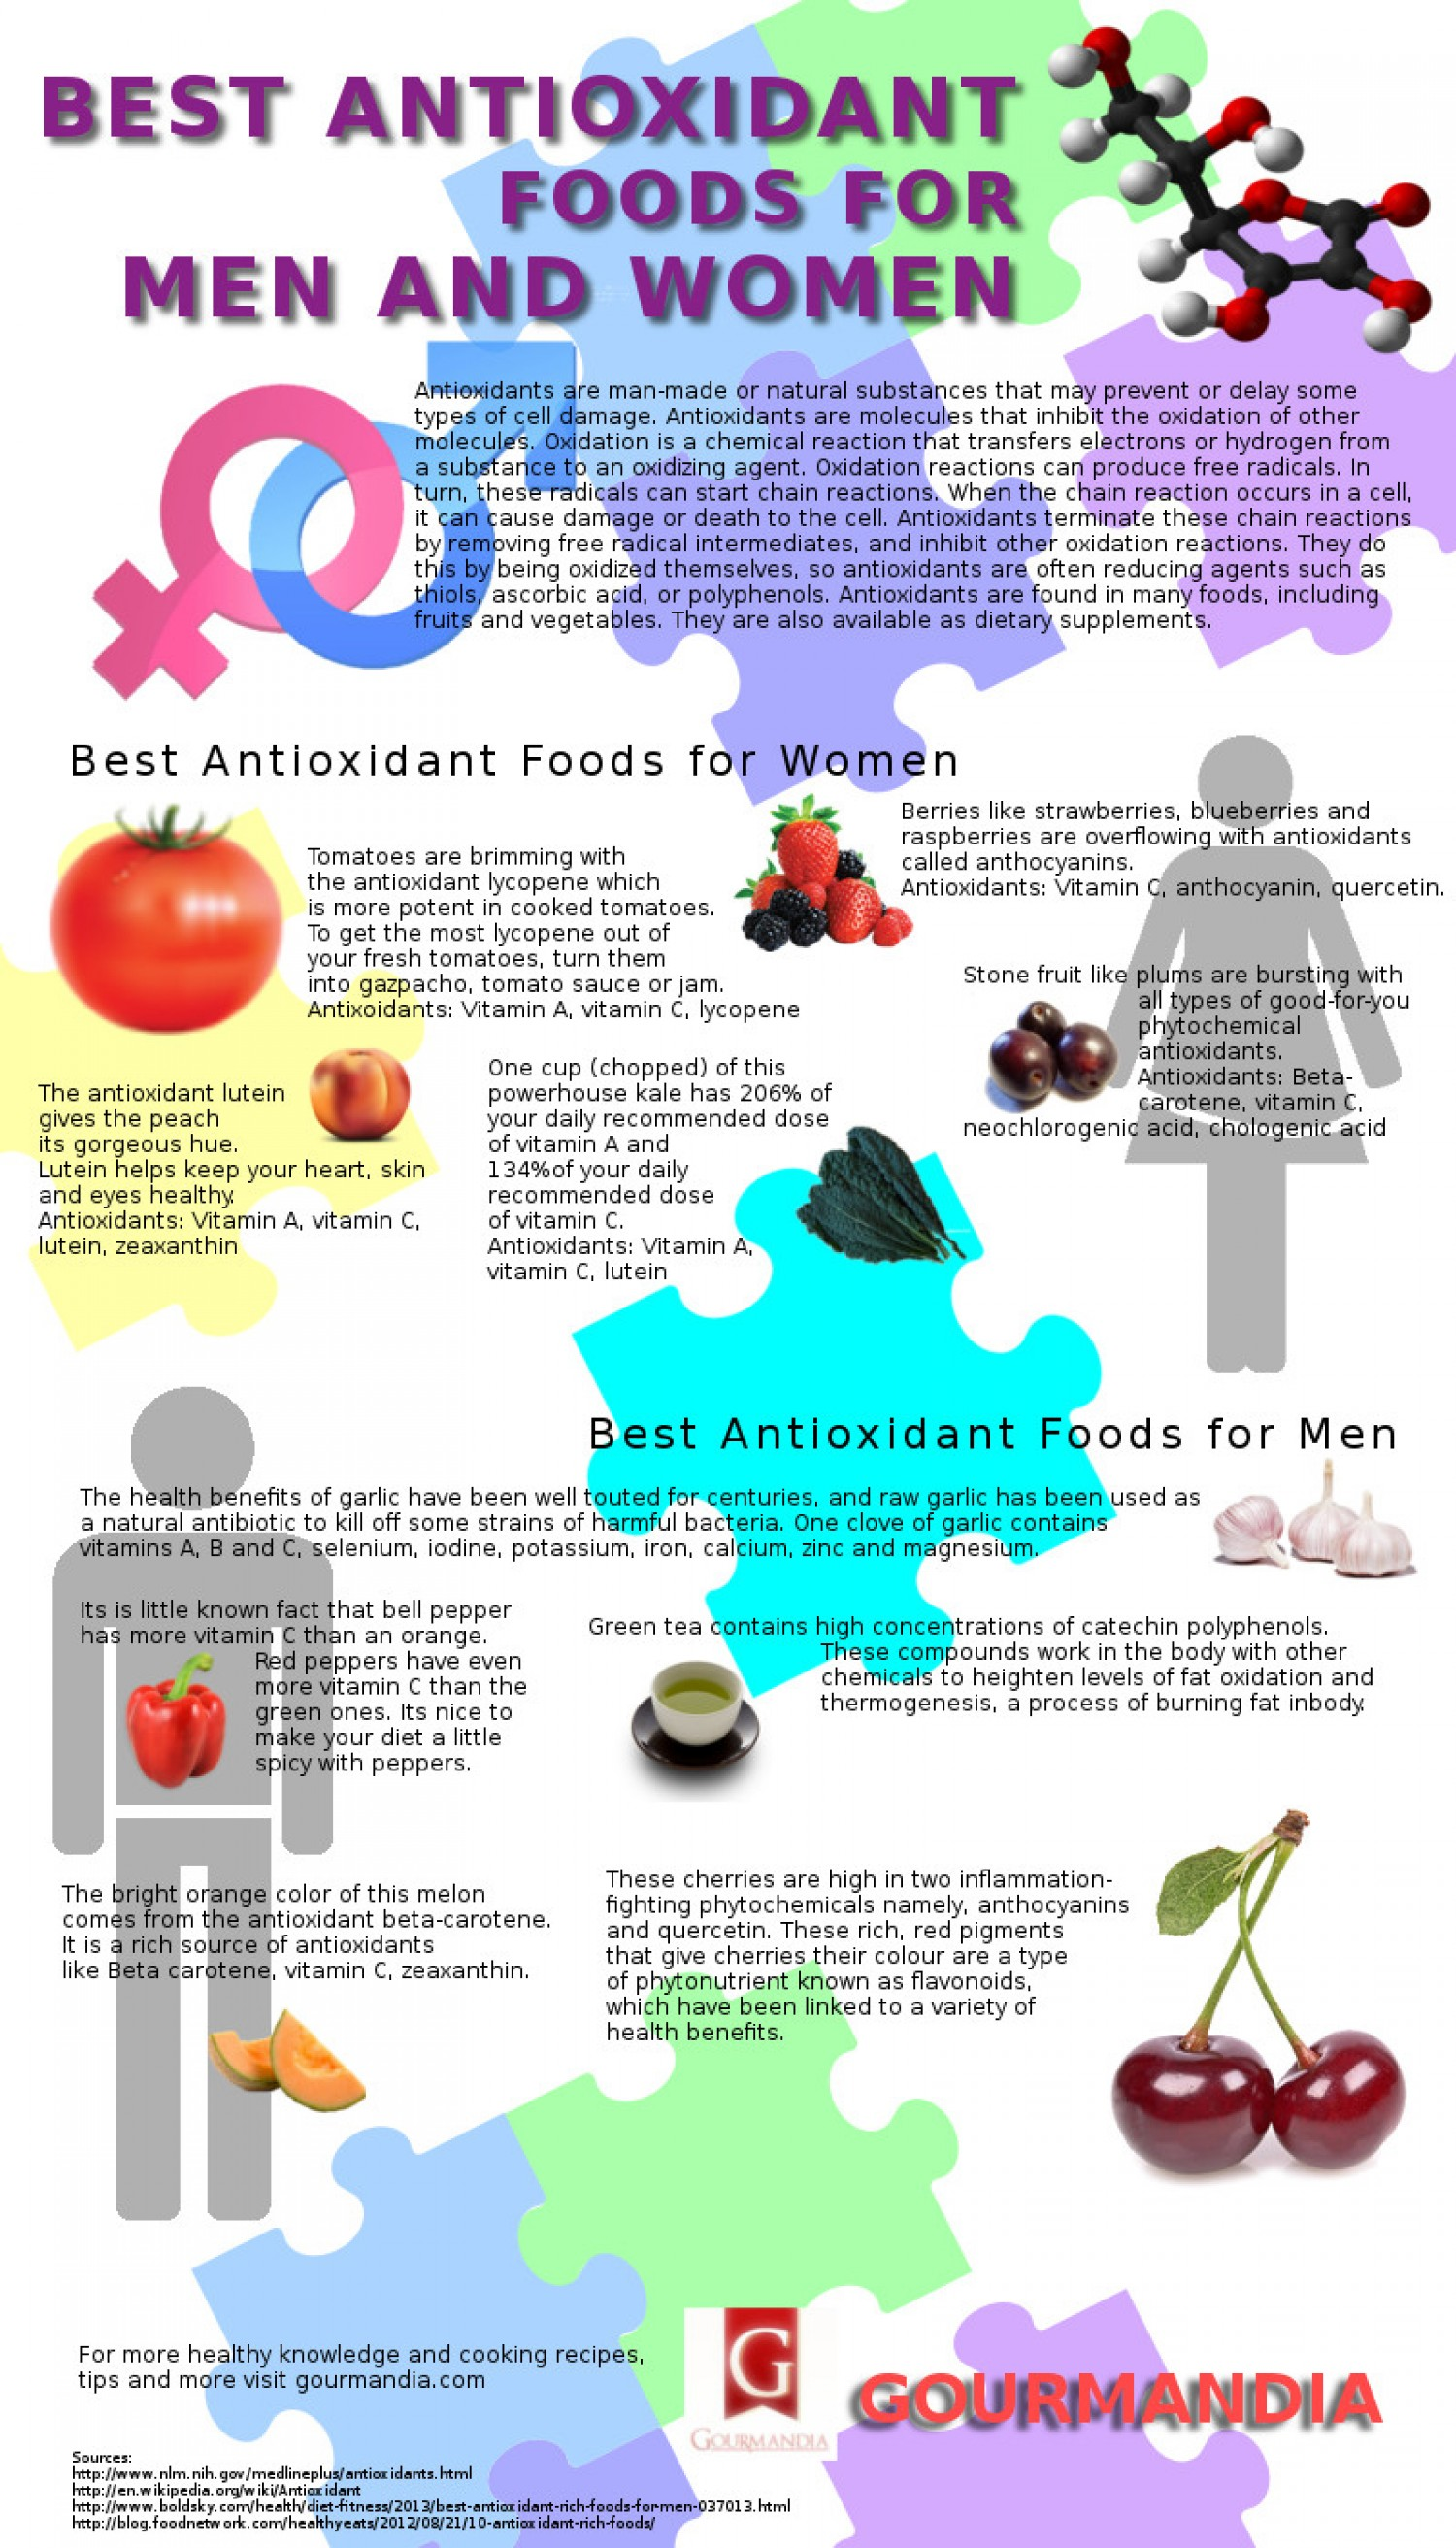 different foods with anti-oxidants that are good for the health